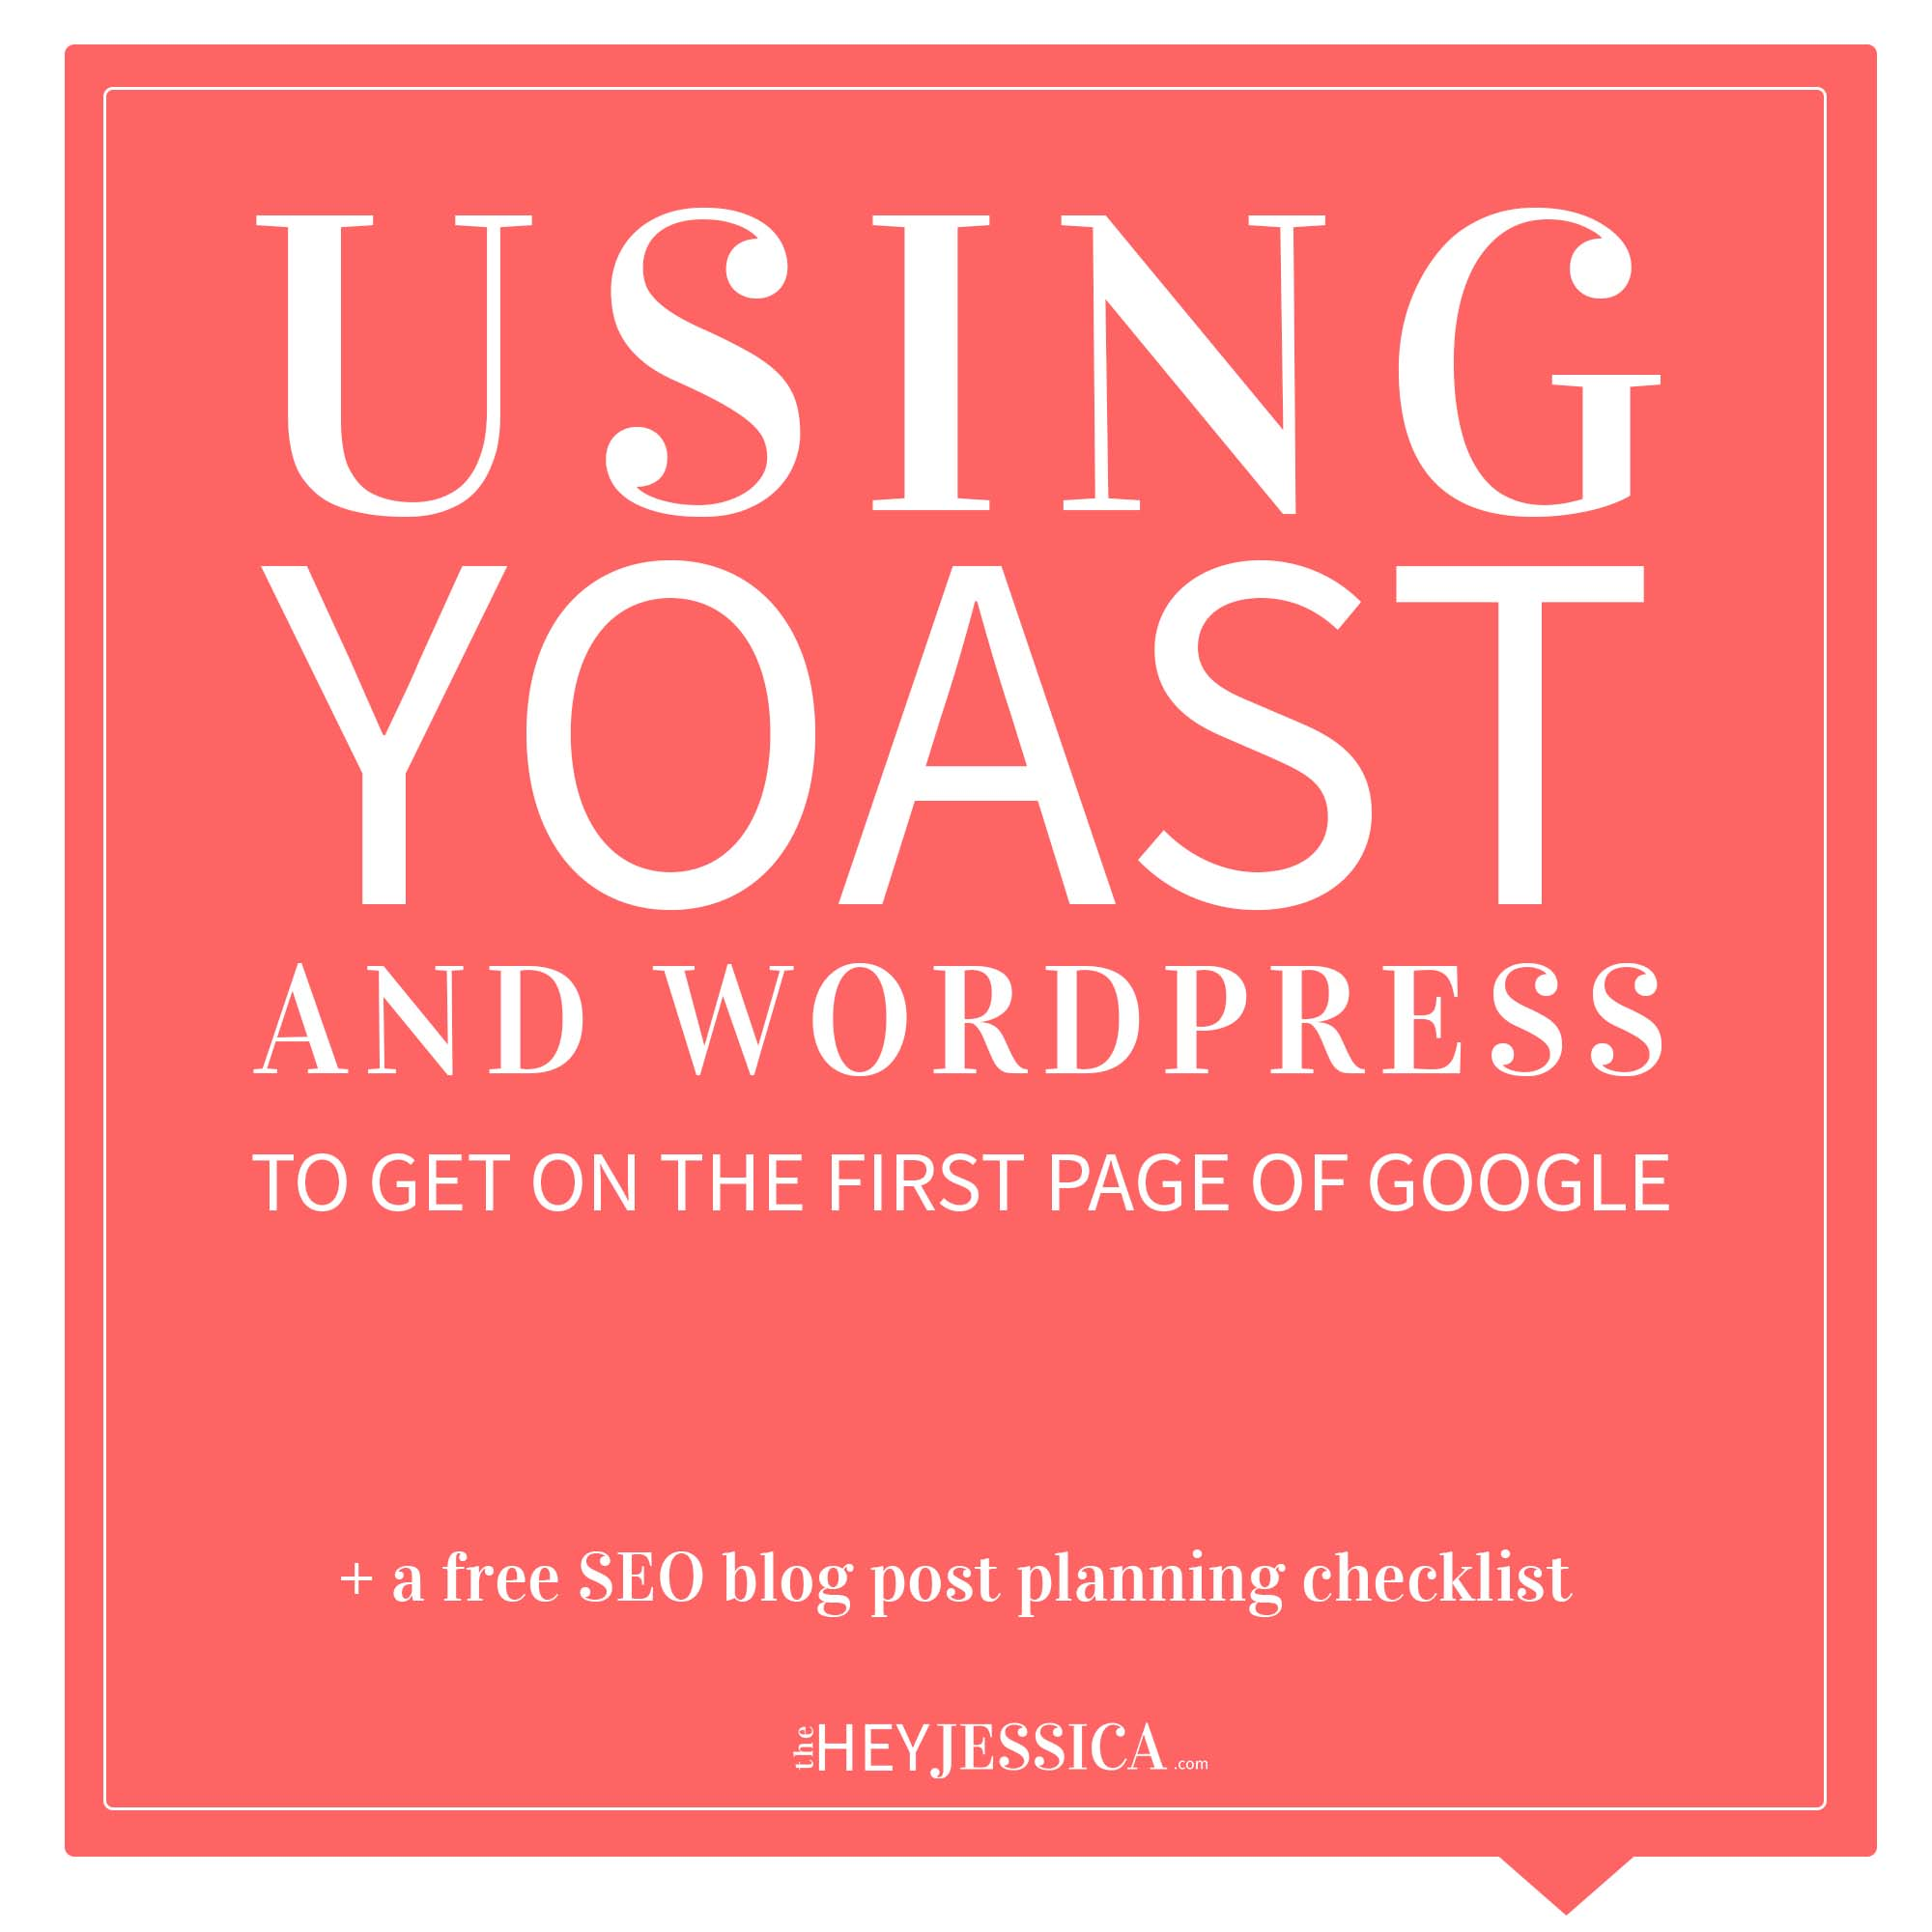 Using Yoast to Boost SEO